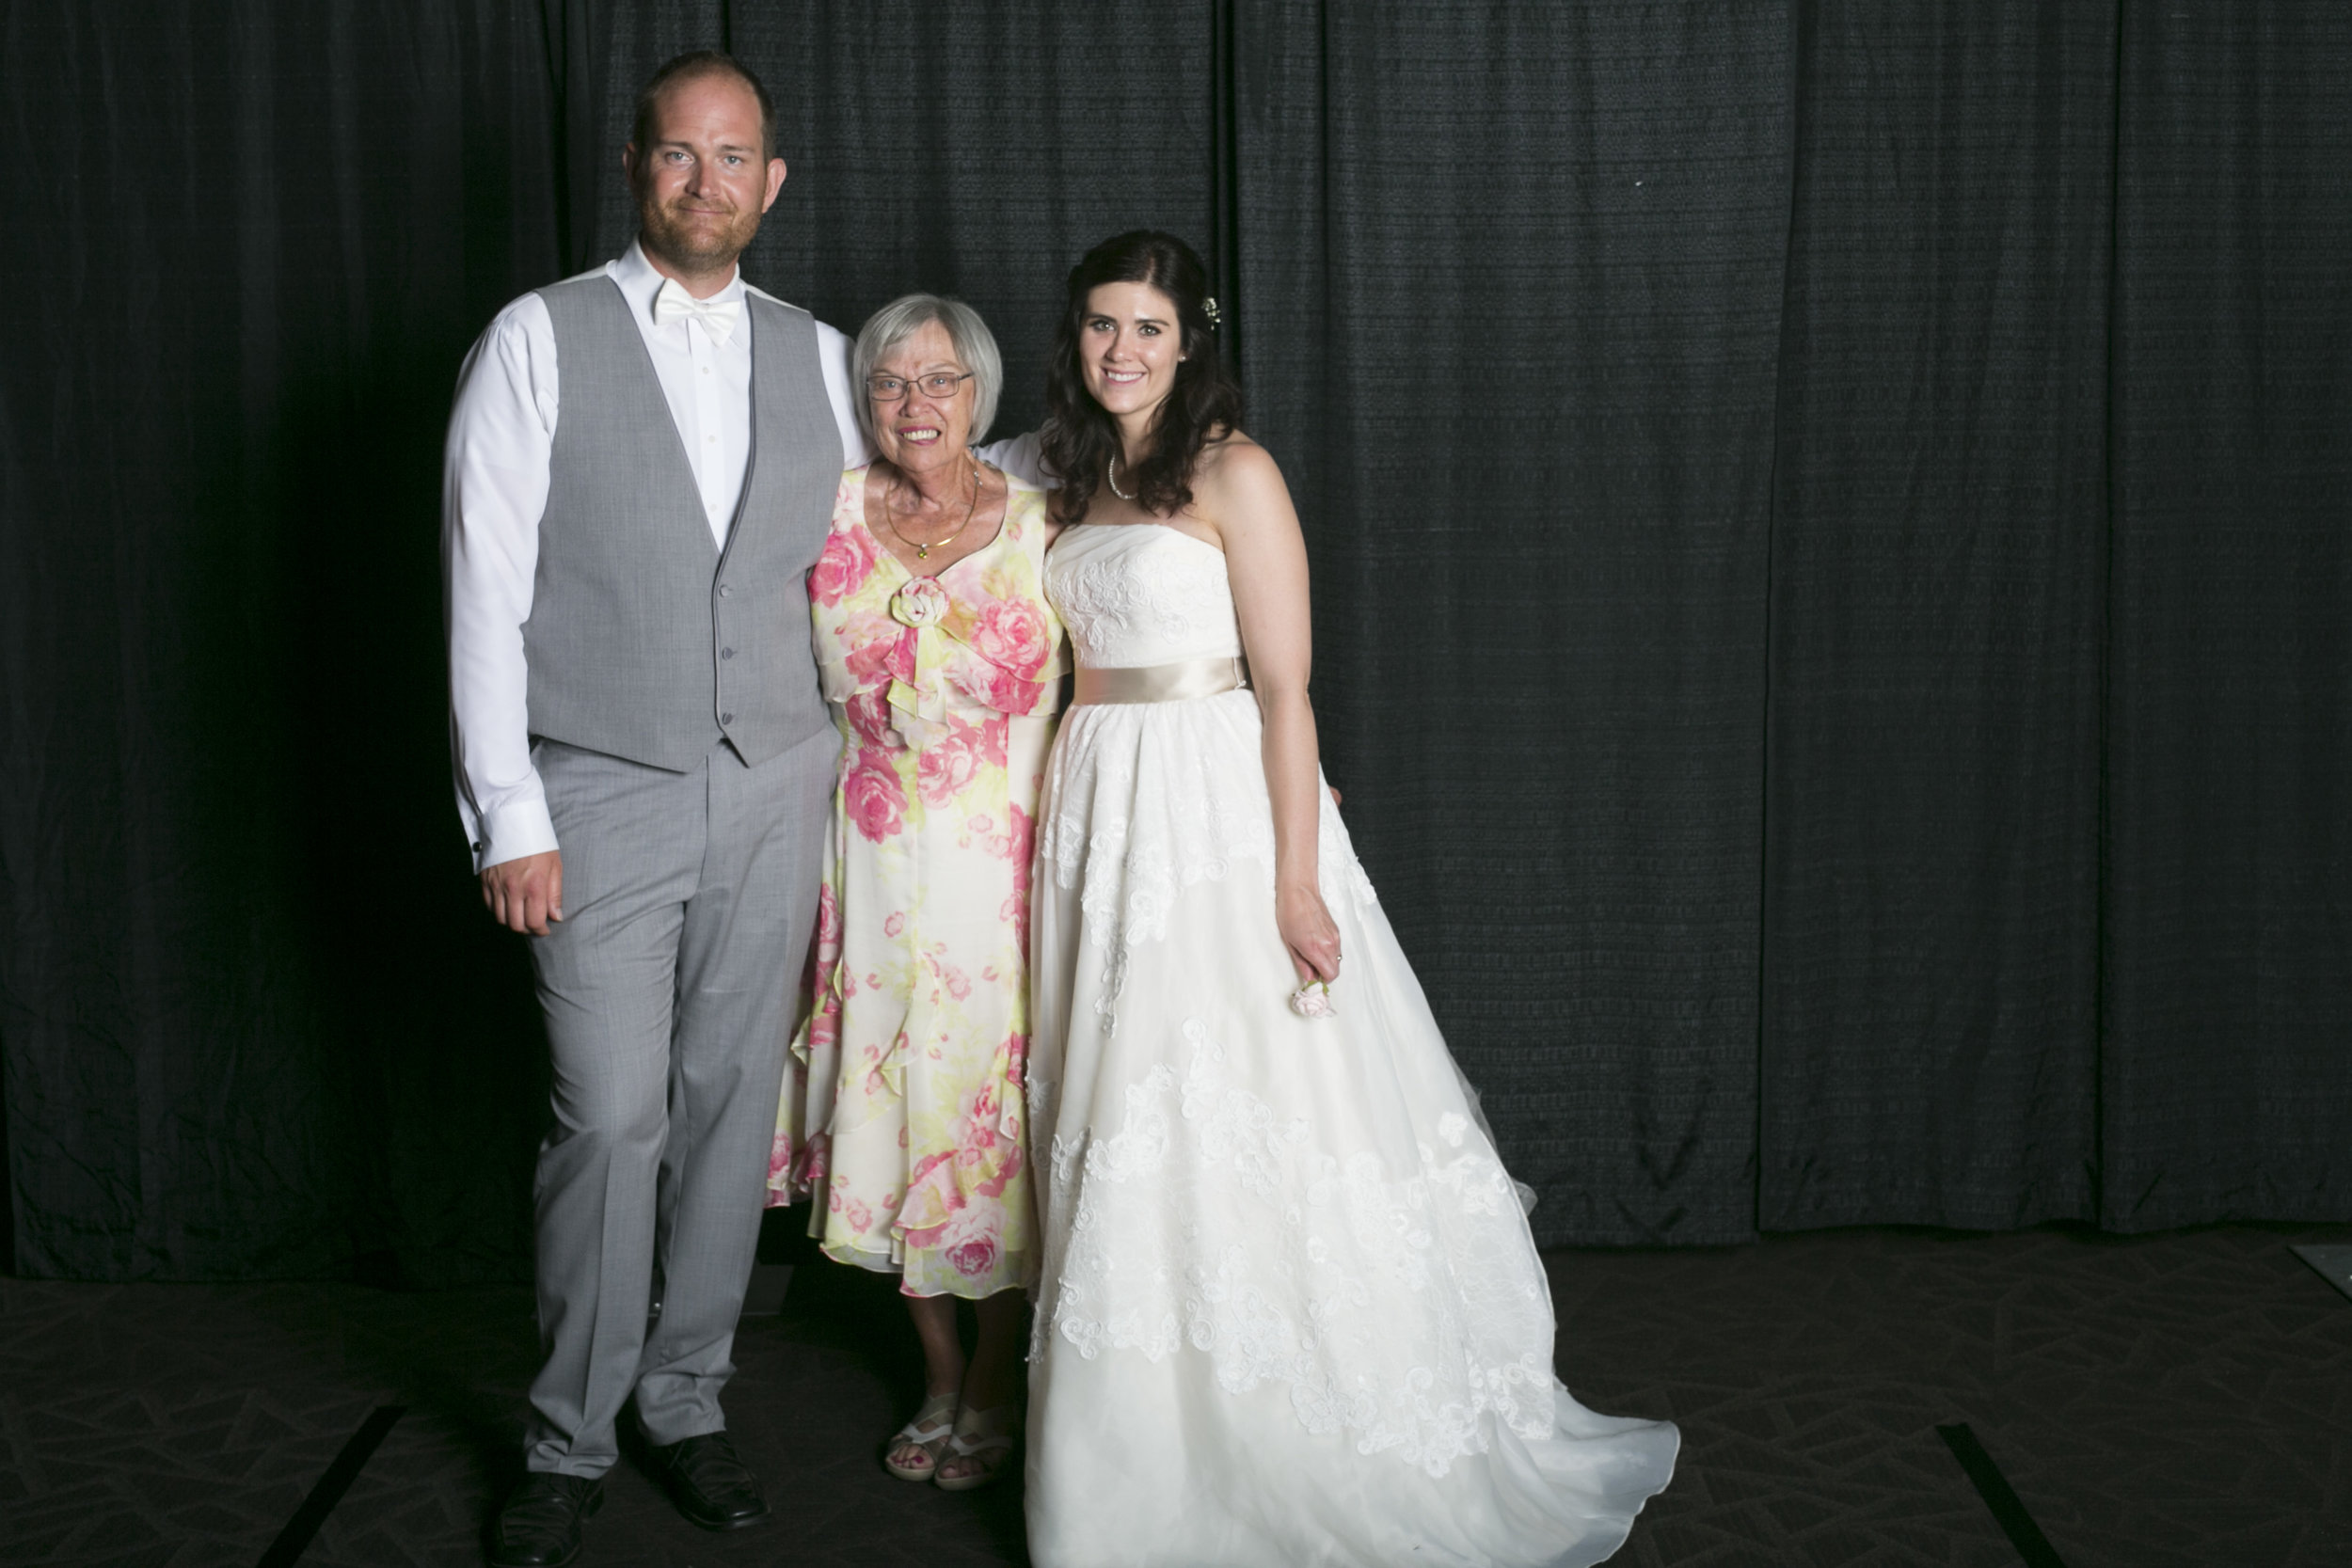 wedding photo booth-102.jpg